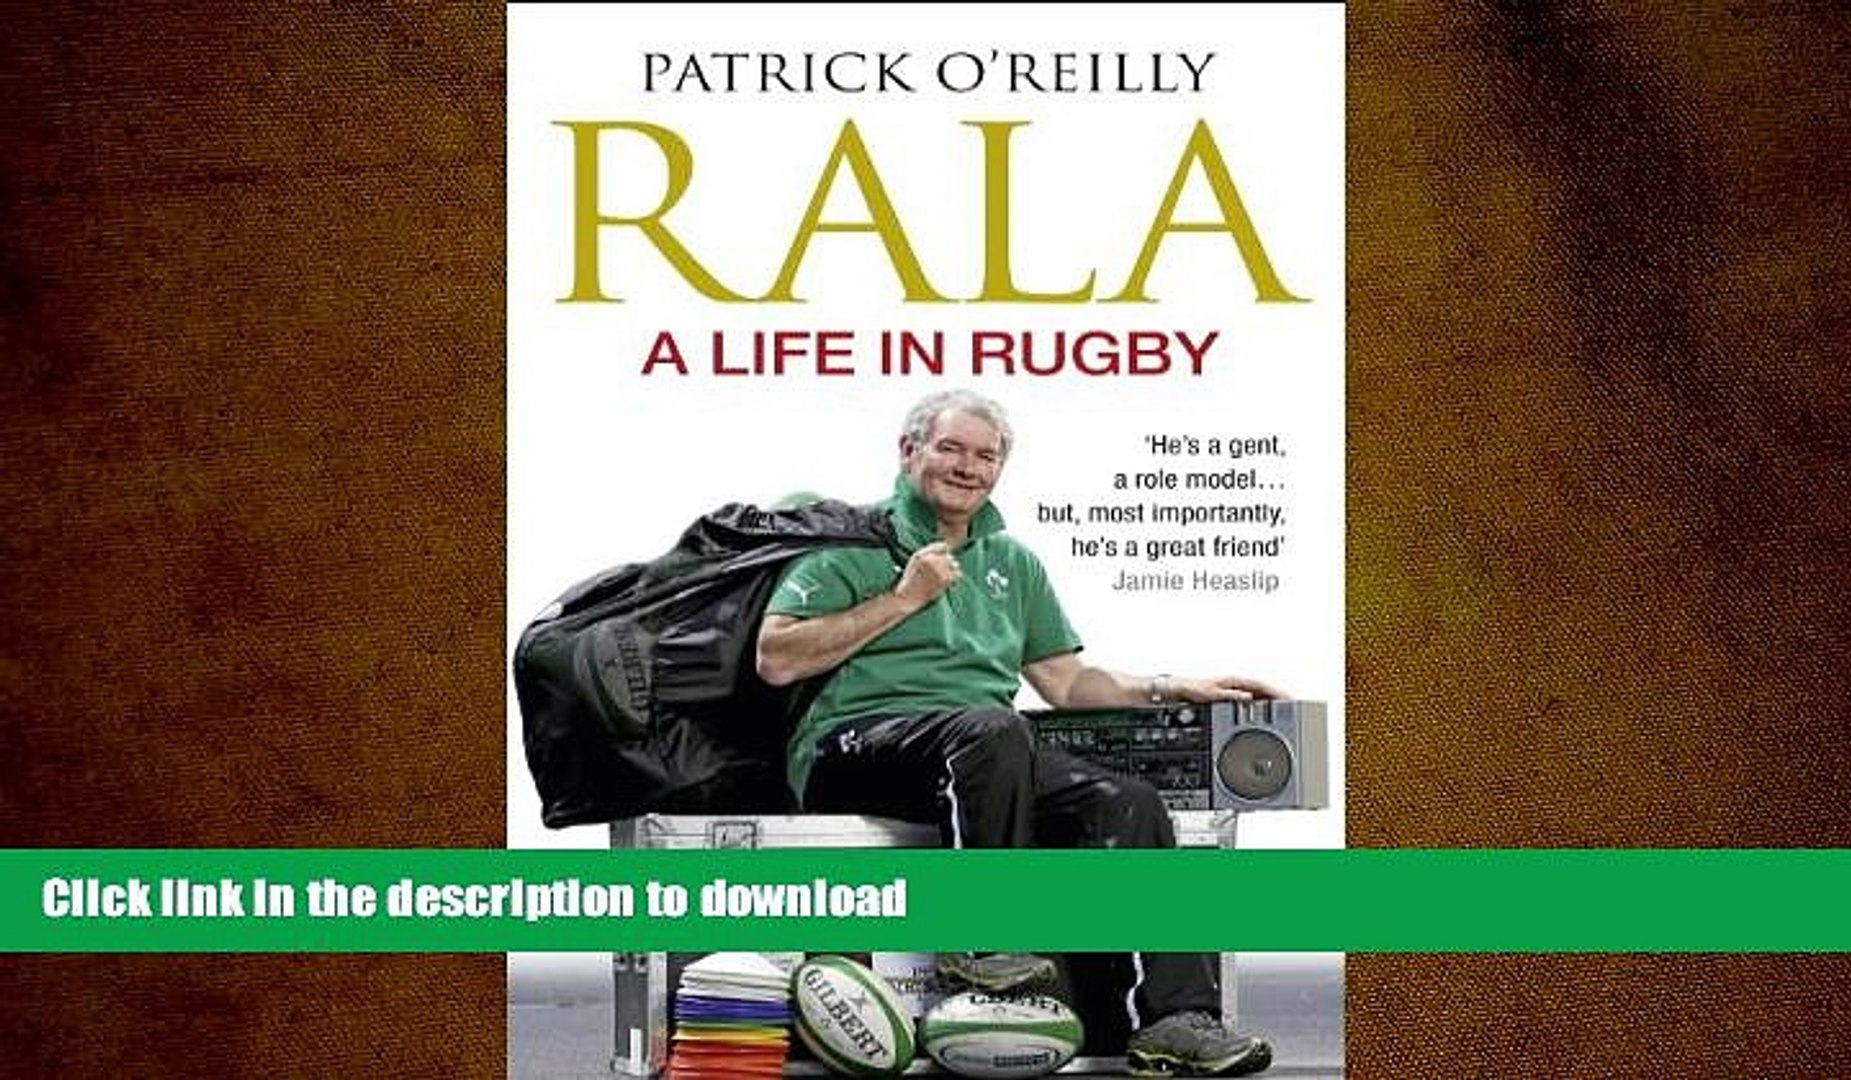 Epub Rala: A Life in Rugby Kindle eBooks